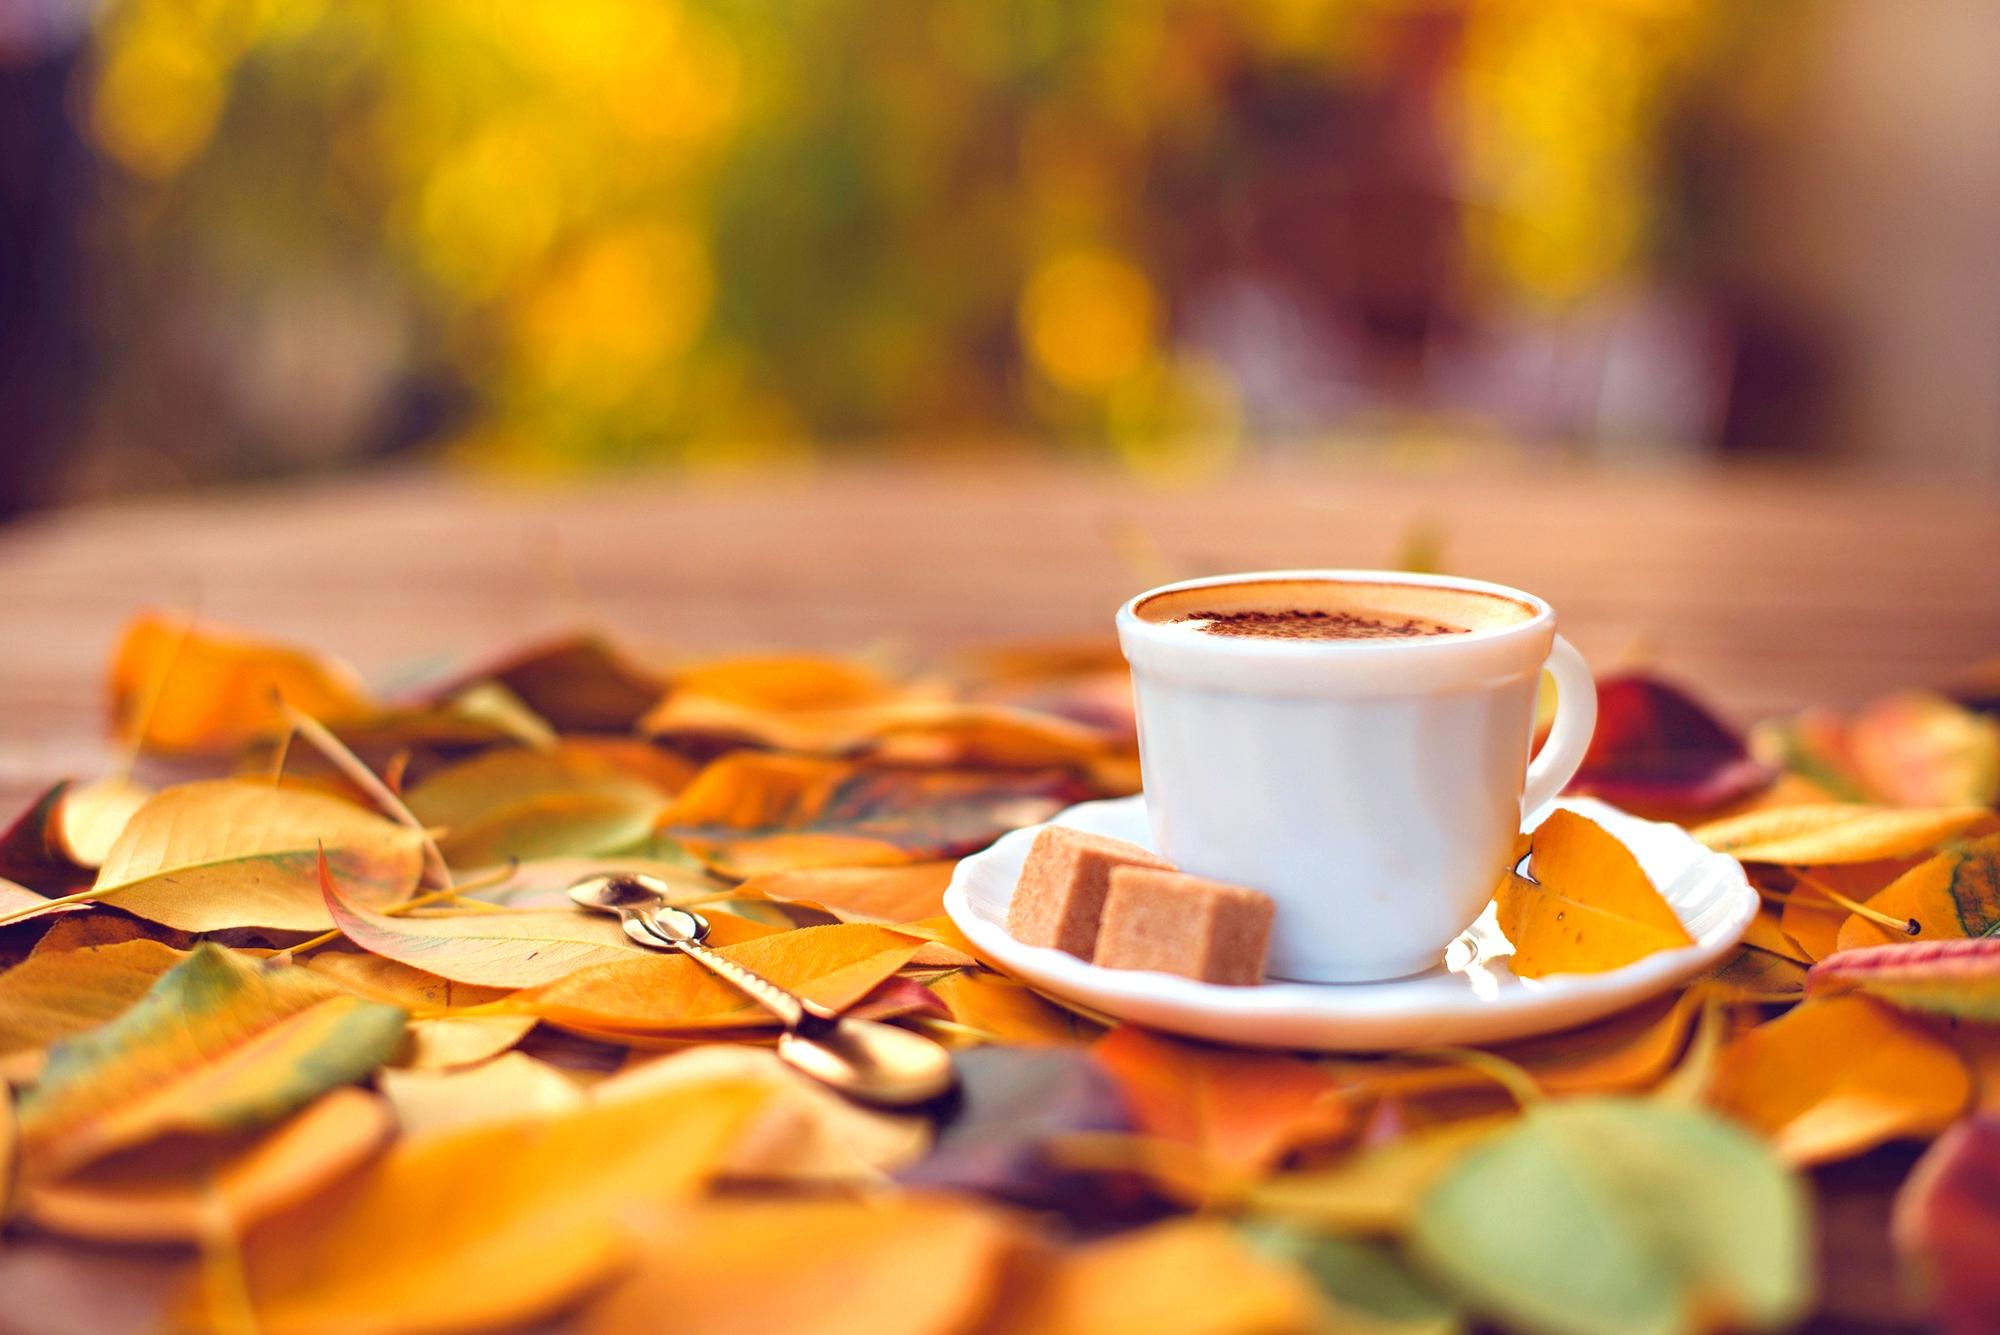 Happy Fall Wallpaper Iphone Sweet Coffee And An Autumn Carpet Hd Wallpaper